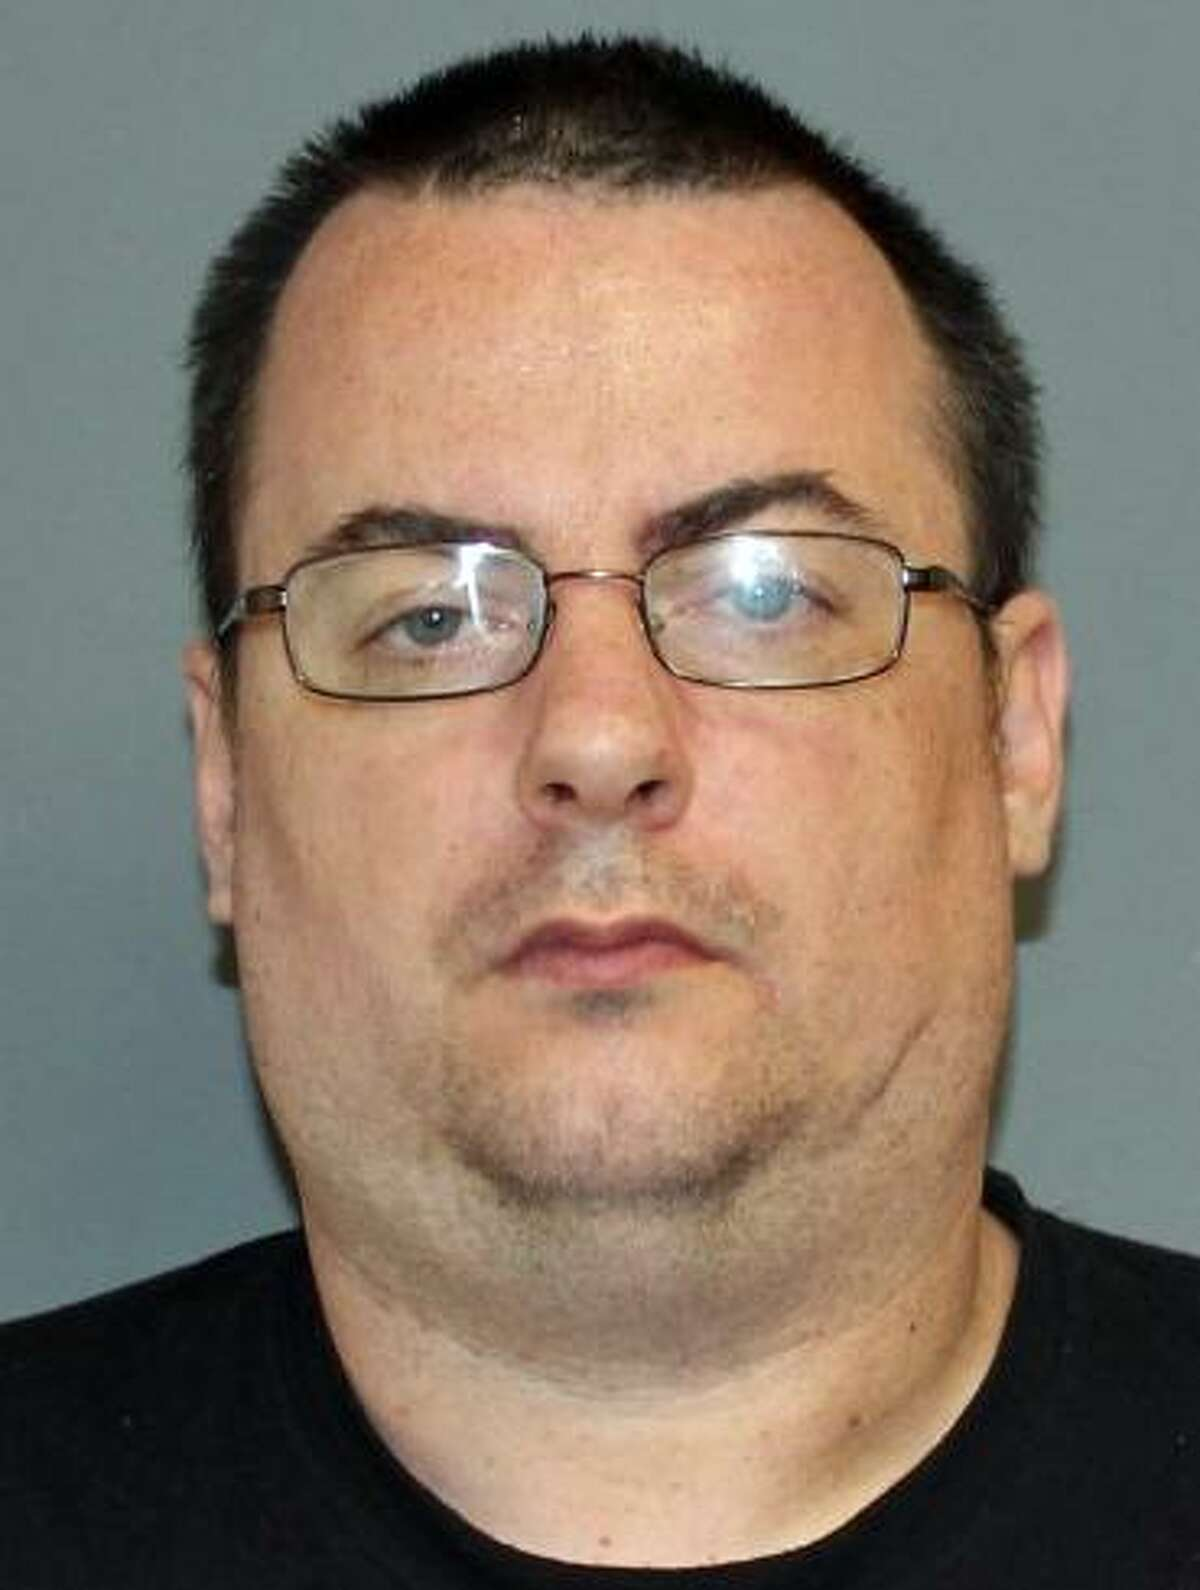 A 38-year-old man has been arrested for allegedly having sex with a young girl starting when she was just 12 years old. Adam Besaw, of Shelton, was charged with first-degree sexual assault, two counts of second-degree sexual assault and four counts of risk of injury and impairing the morals of a minor and coercion.